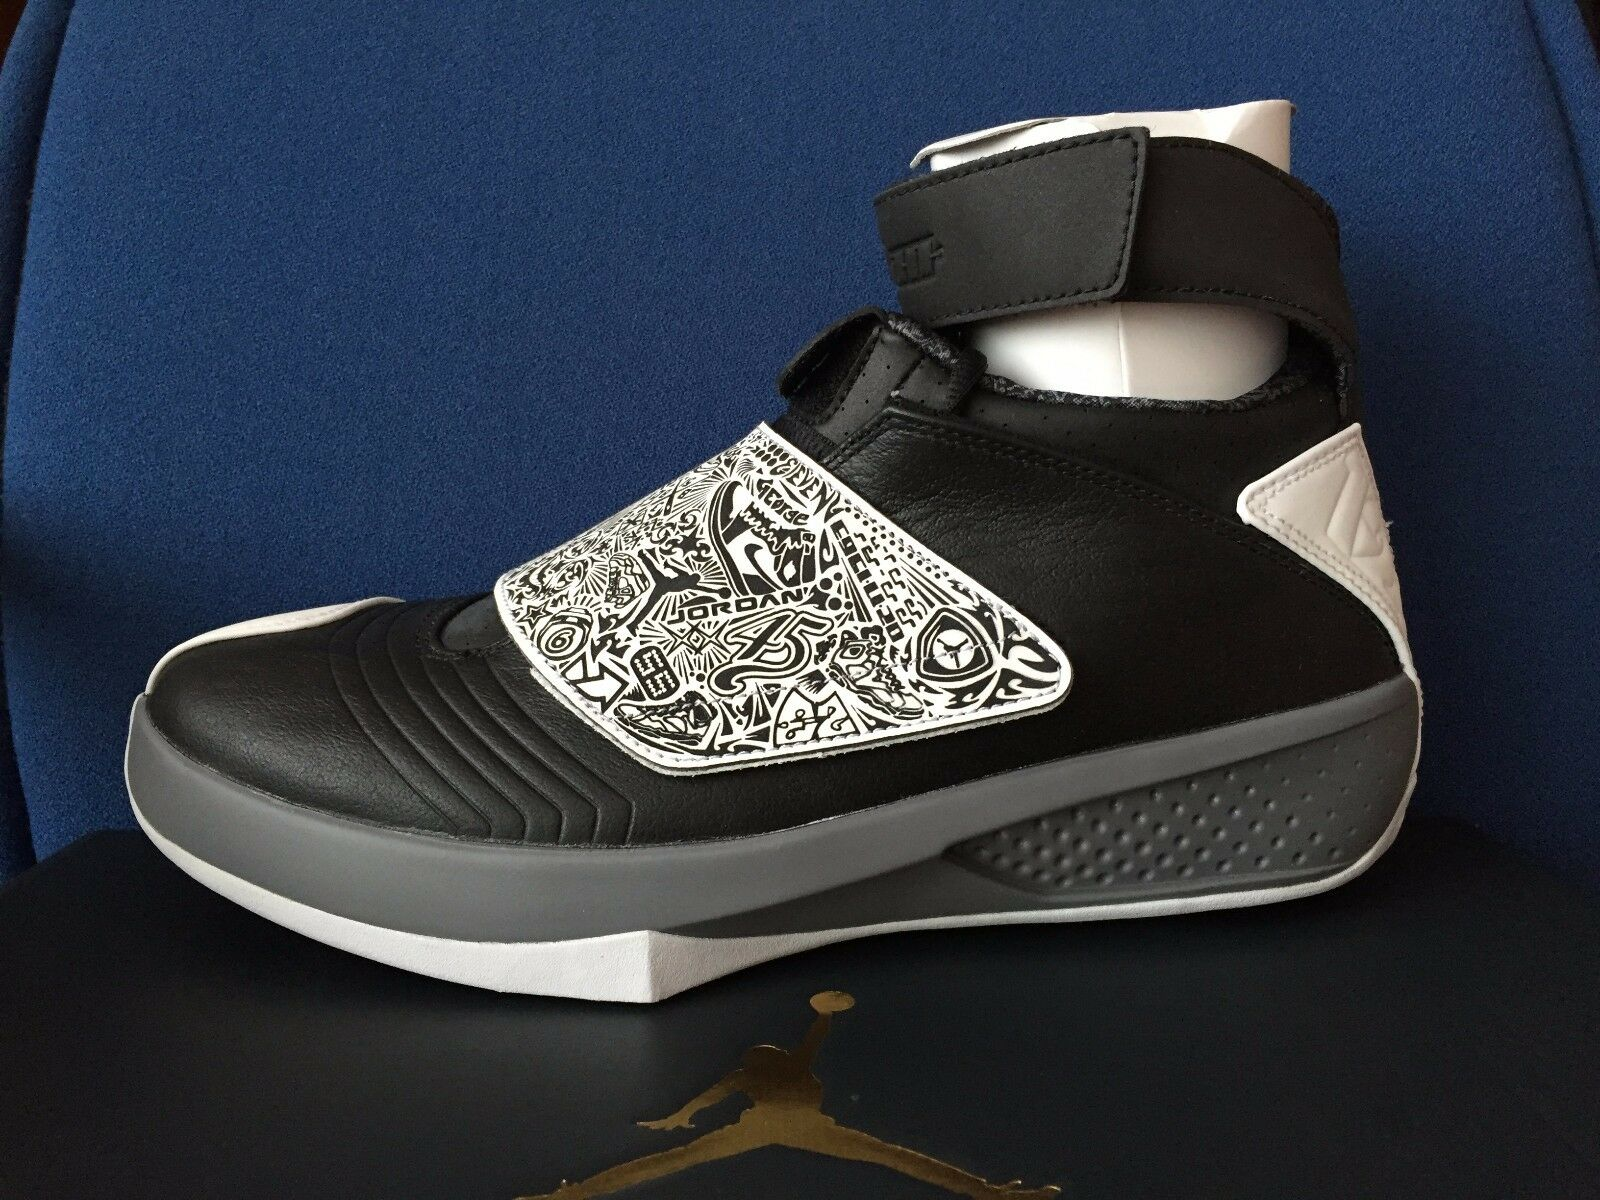 c530540bc6e032 NIKE AIR JORDAN 20 XX OREO sz 10.5 10.5 10.5 BLACK WHITE COOL GREY PLAYOFF  wing